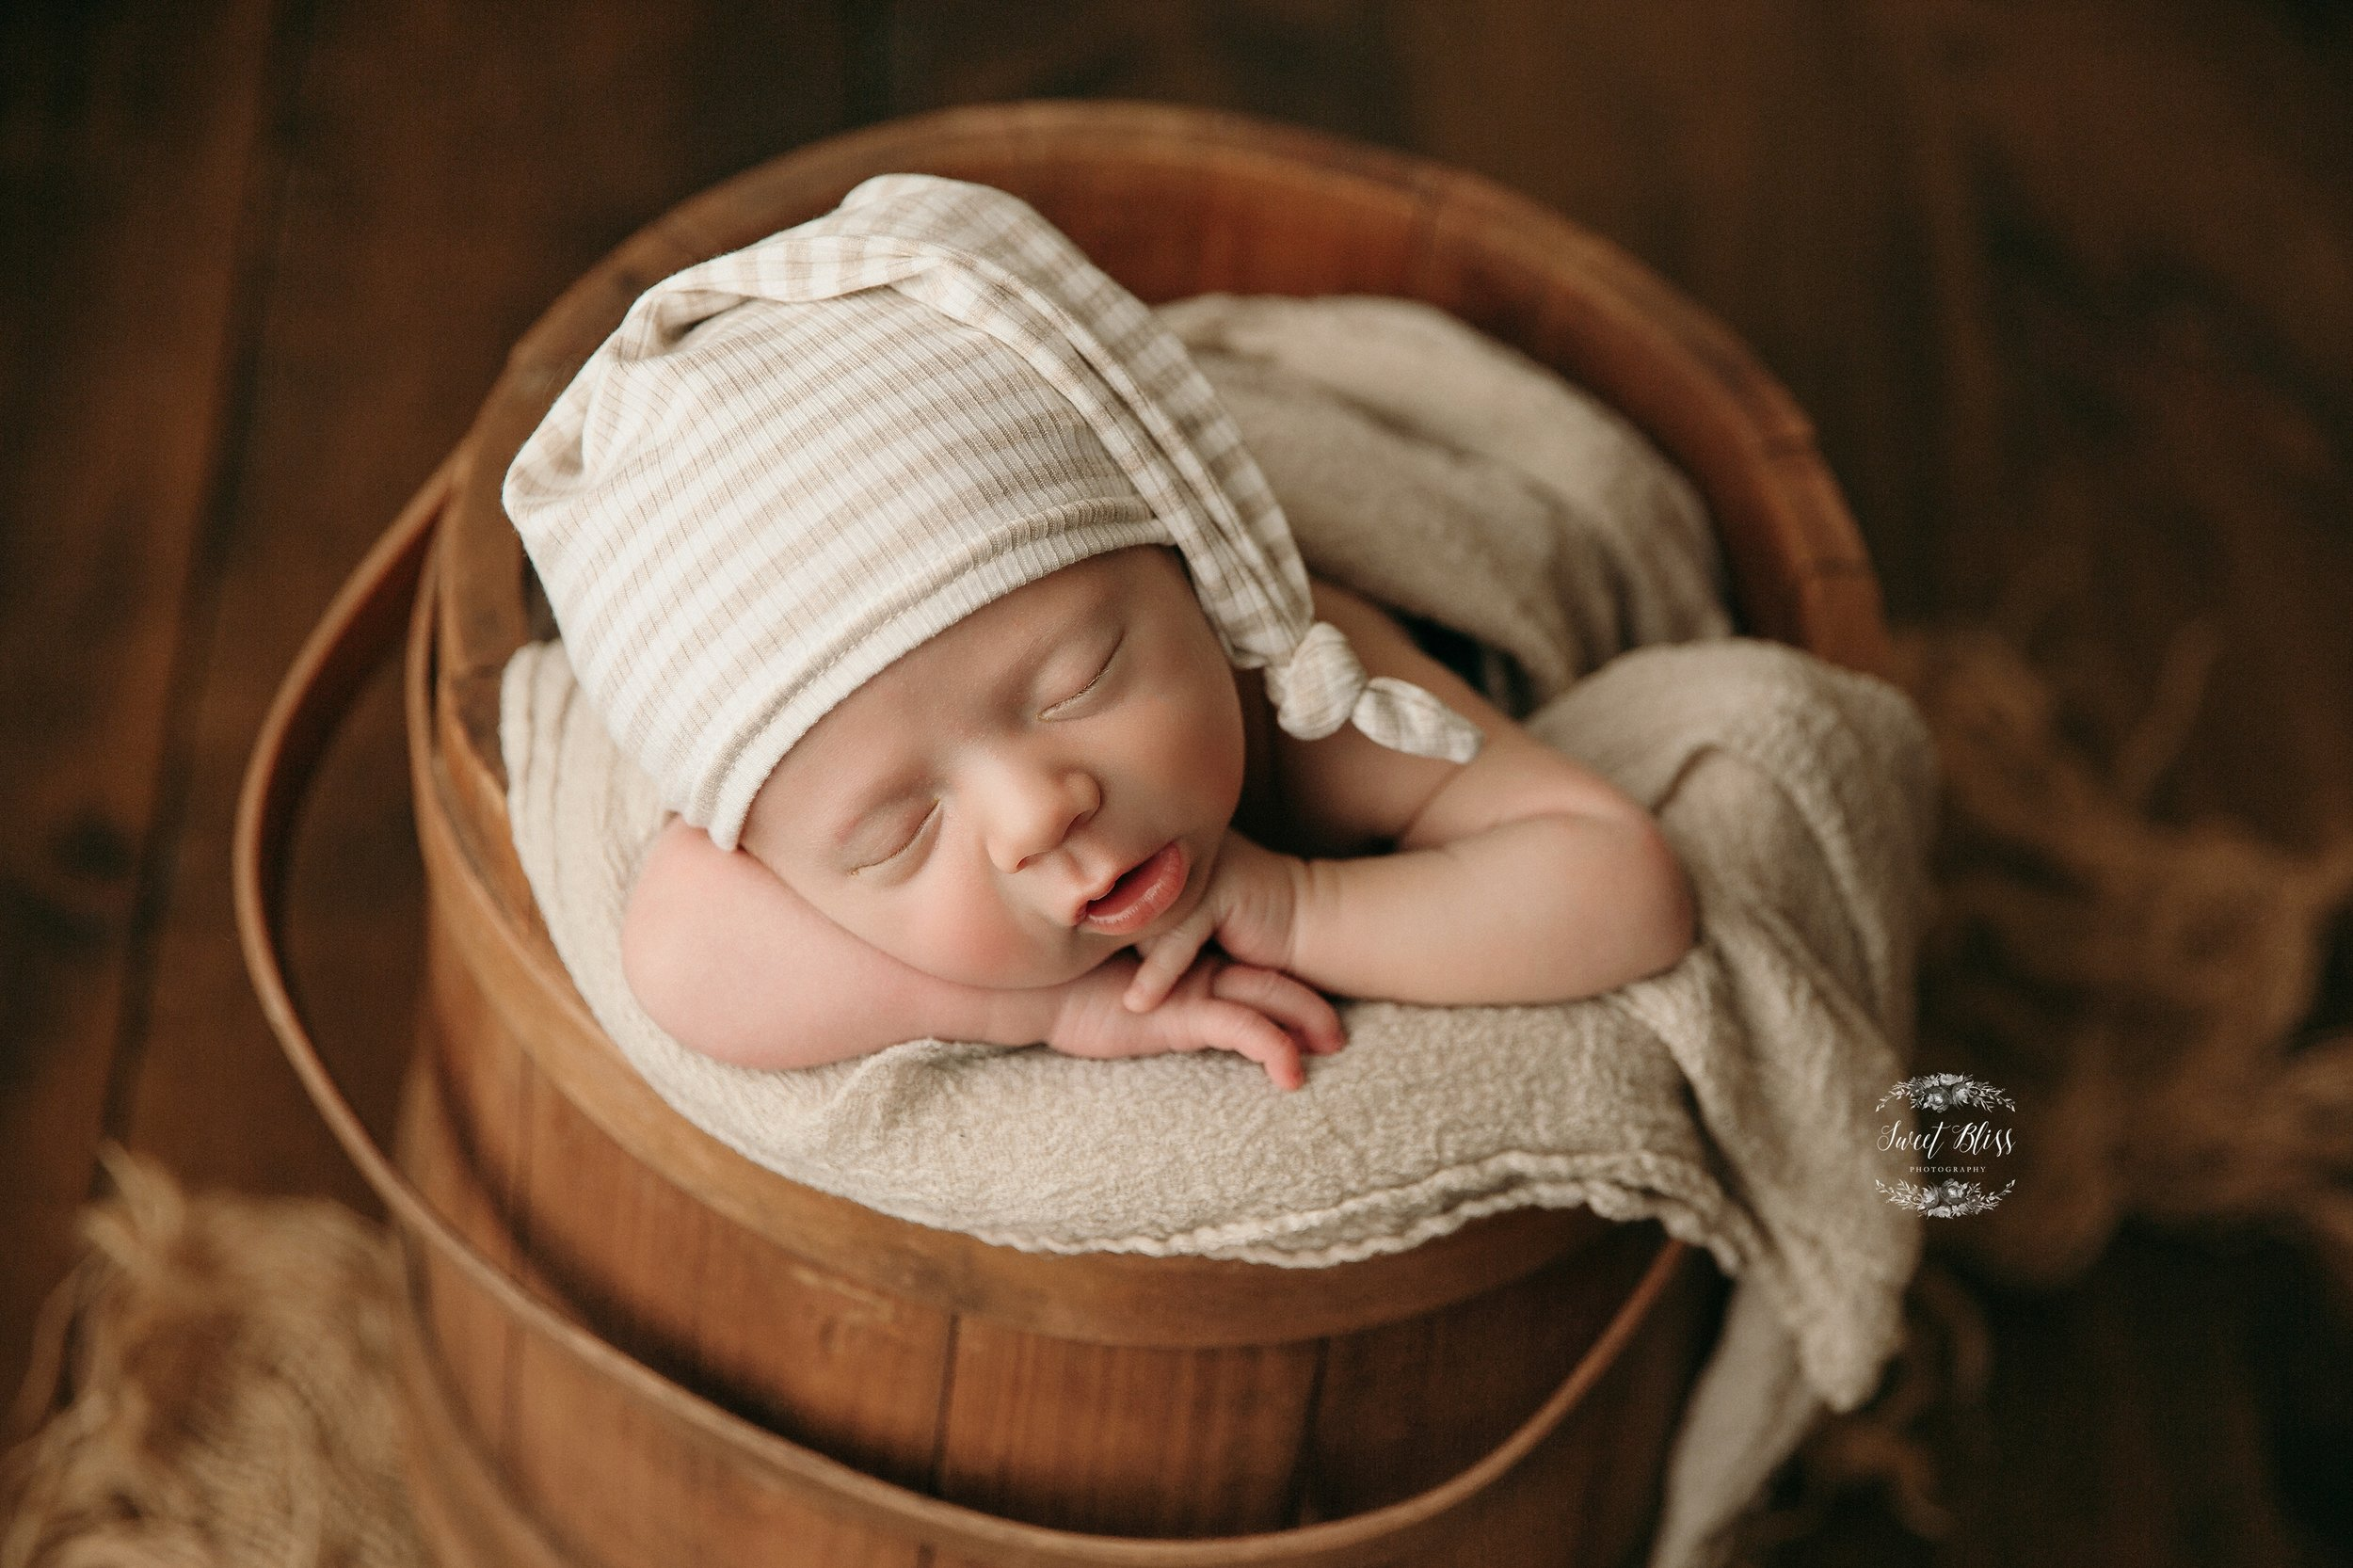 Marylandnewbornphotography_sweetblissphoto_Baltimorebabyportrait-2.jpg